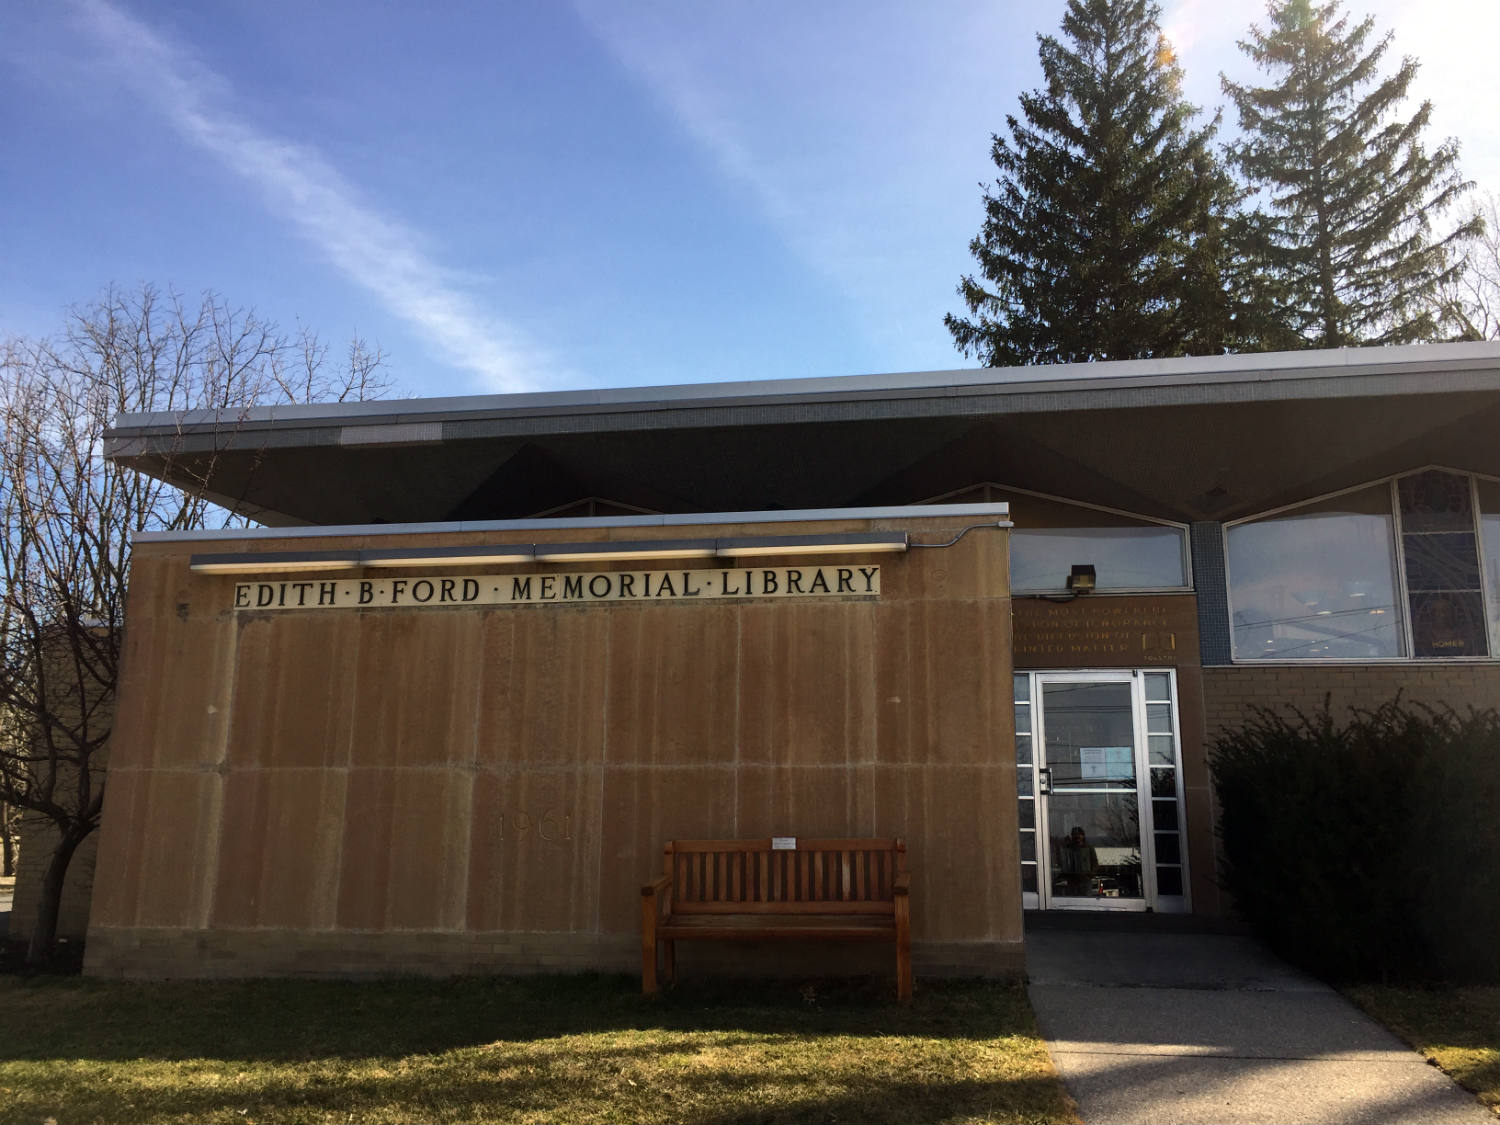 Edith B. Ford Memorial Library Entrance in Ovid, New York